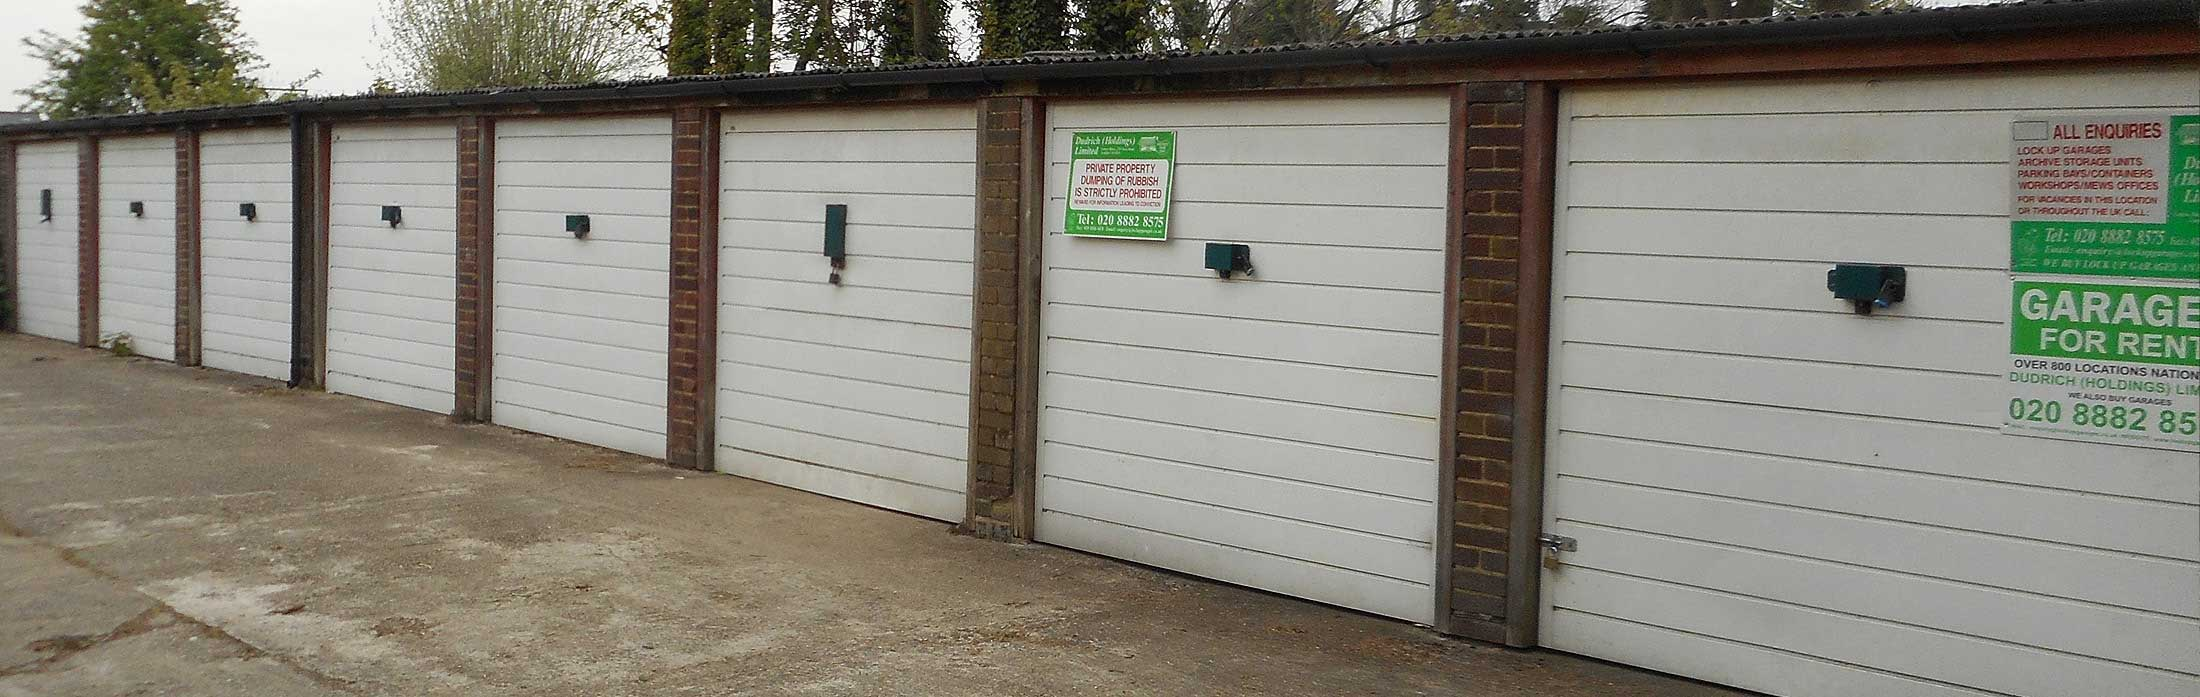 Garages To Rent Rent A Garage Garage Rental Lock Up